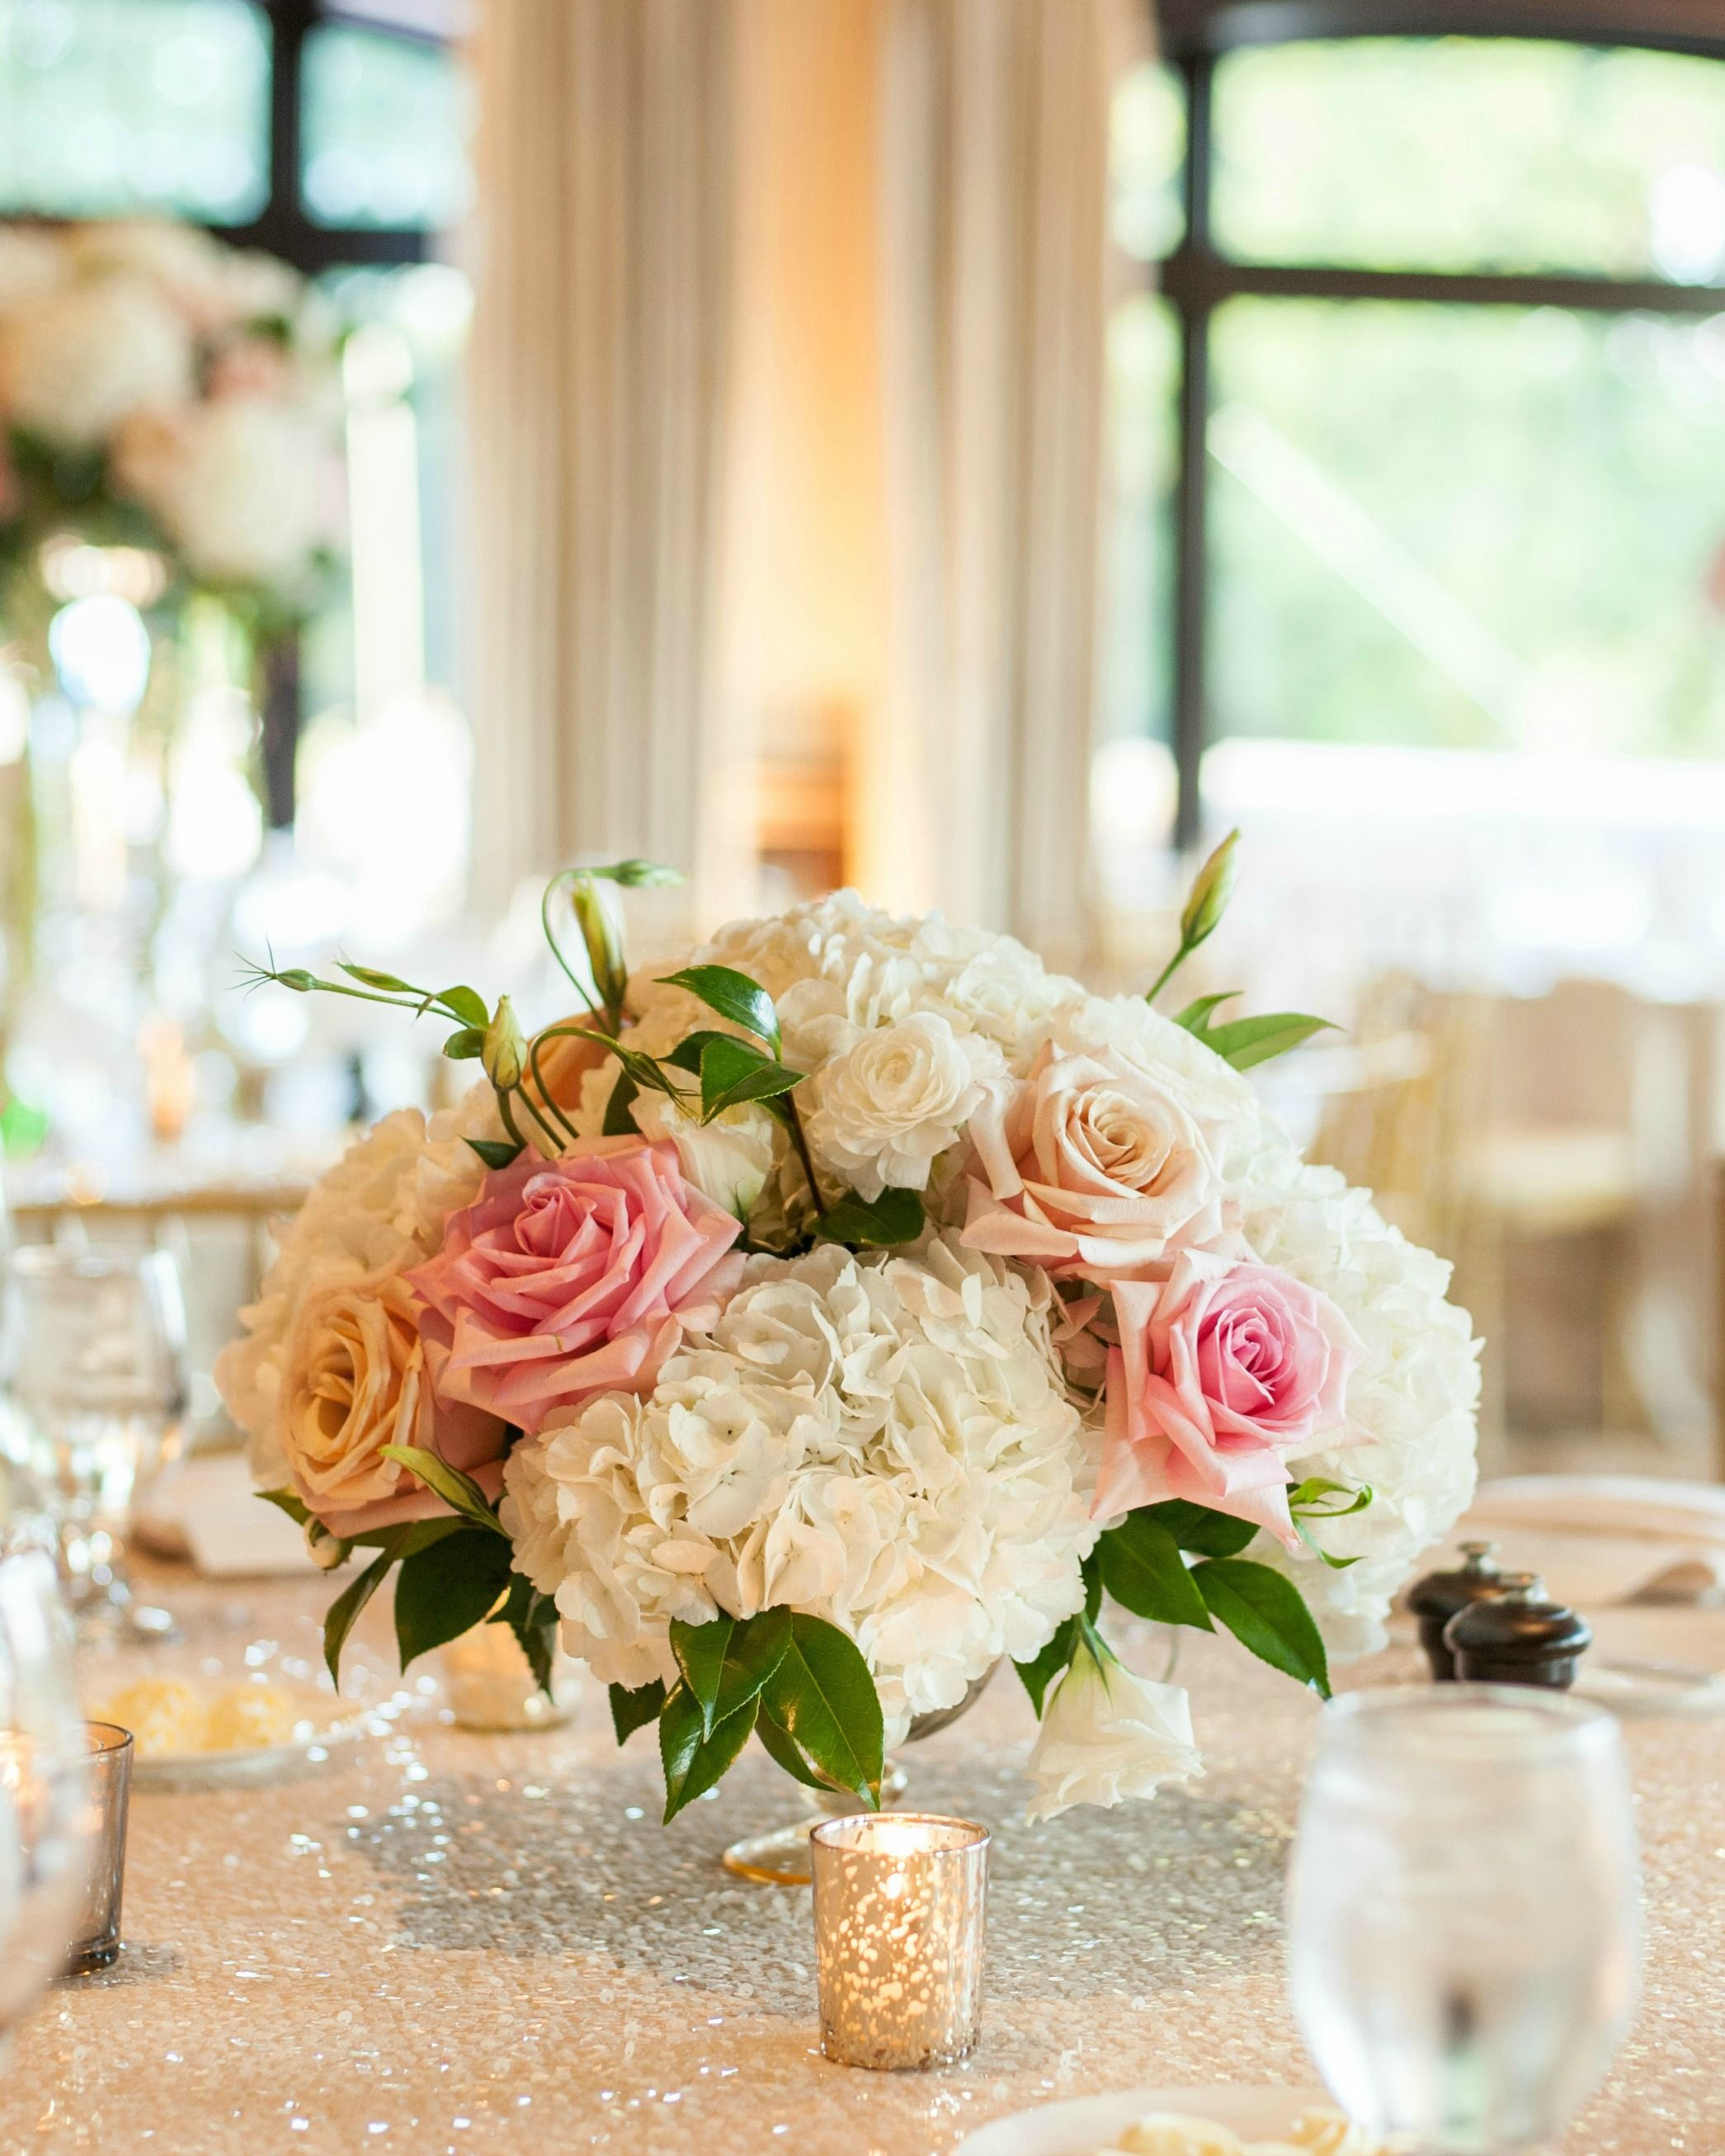 A Blush Wedding Rose And Hydrangea Flowers For Centerpieces Gold Decor Accents